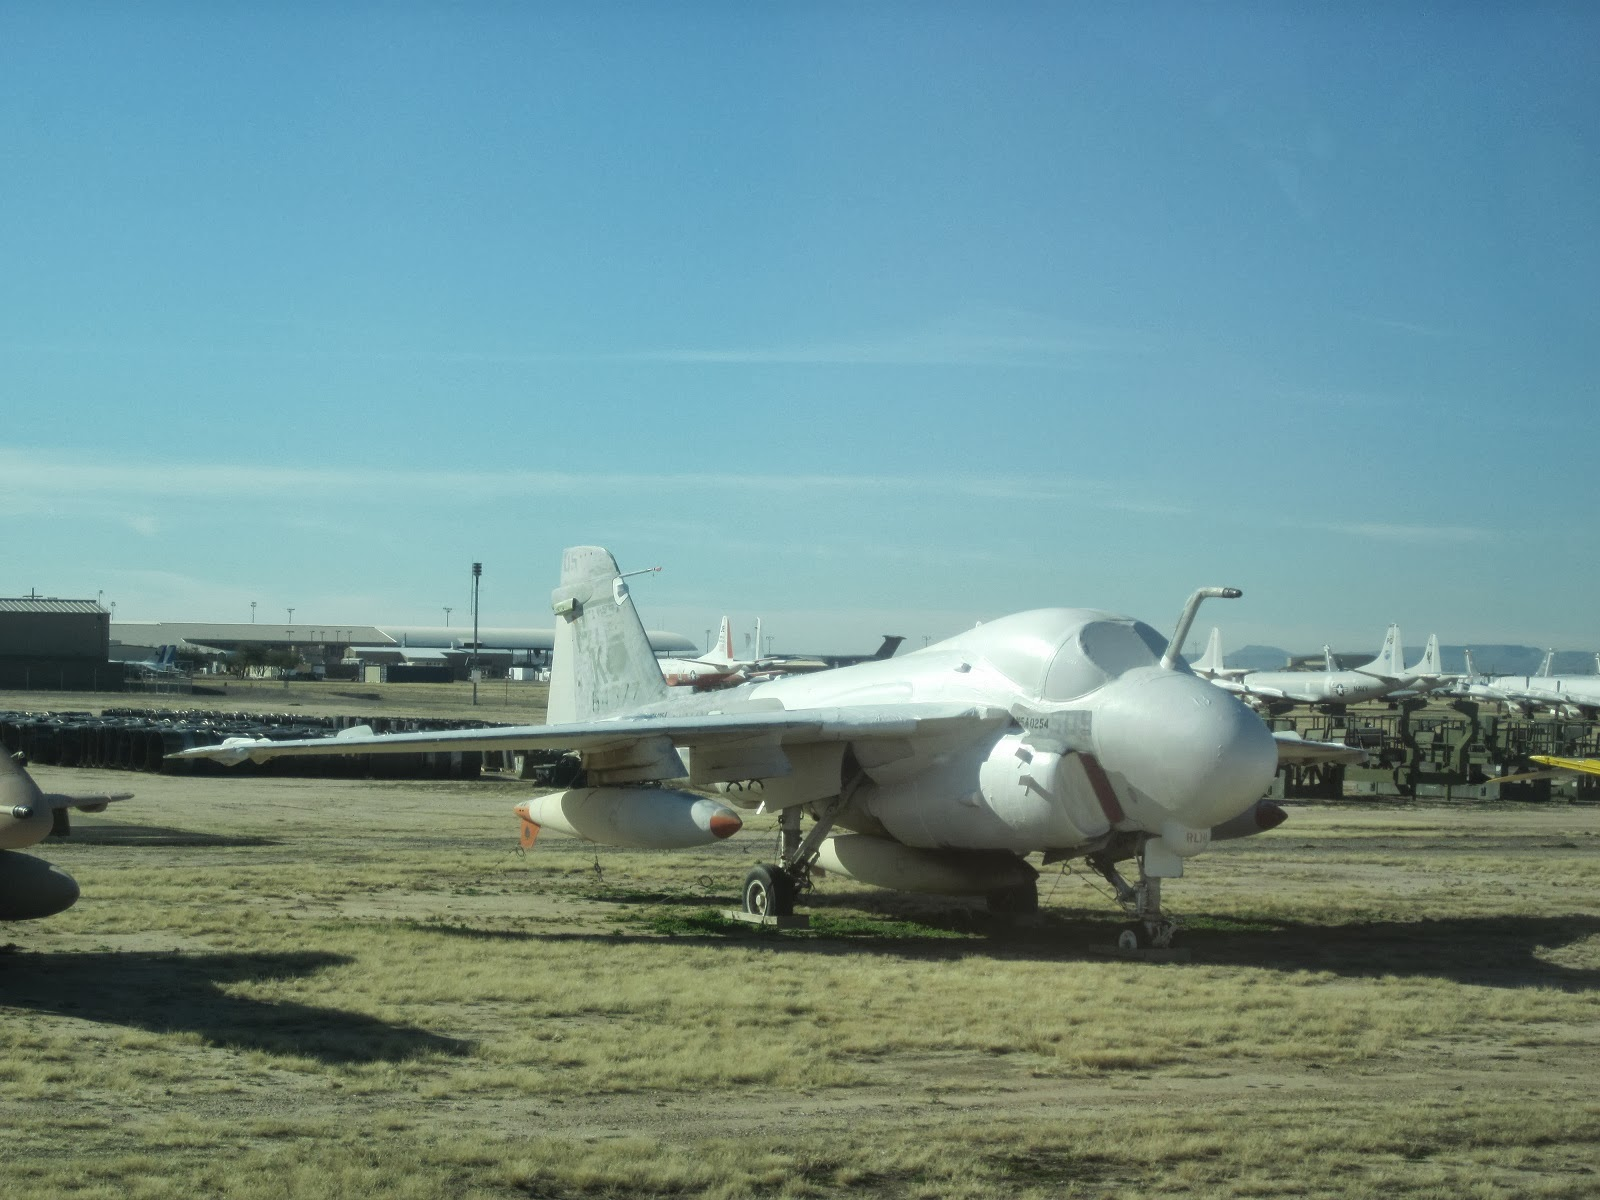 A Grumman A-6 Intruder all-weather attack aircraft. Entering service in 1963, a total of 693 Intruders were built. The A-6 was retired by the U.S. Marine ...